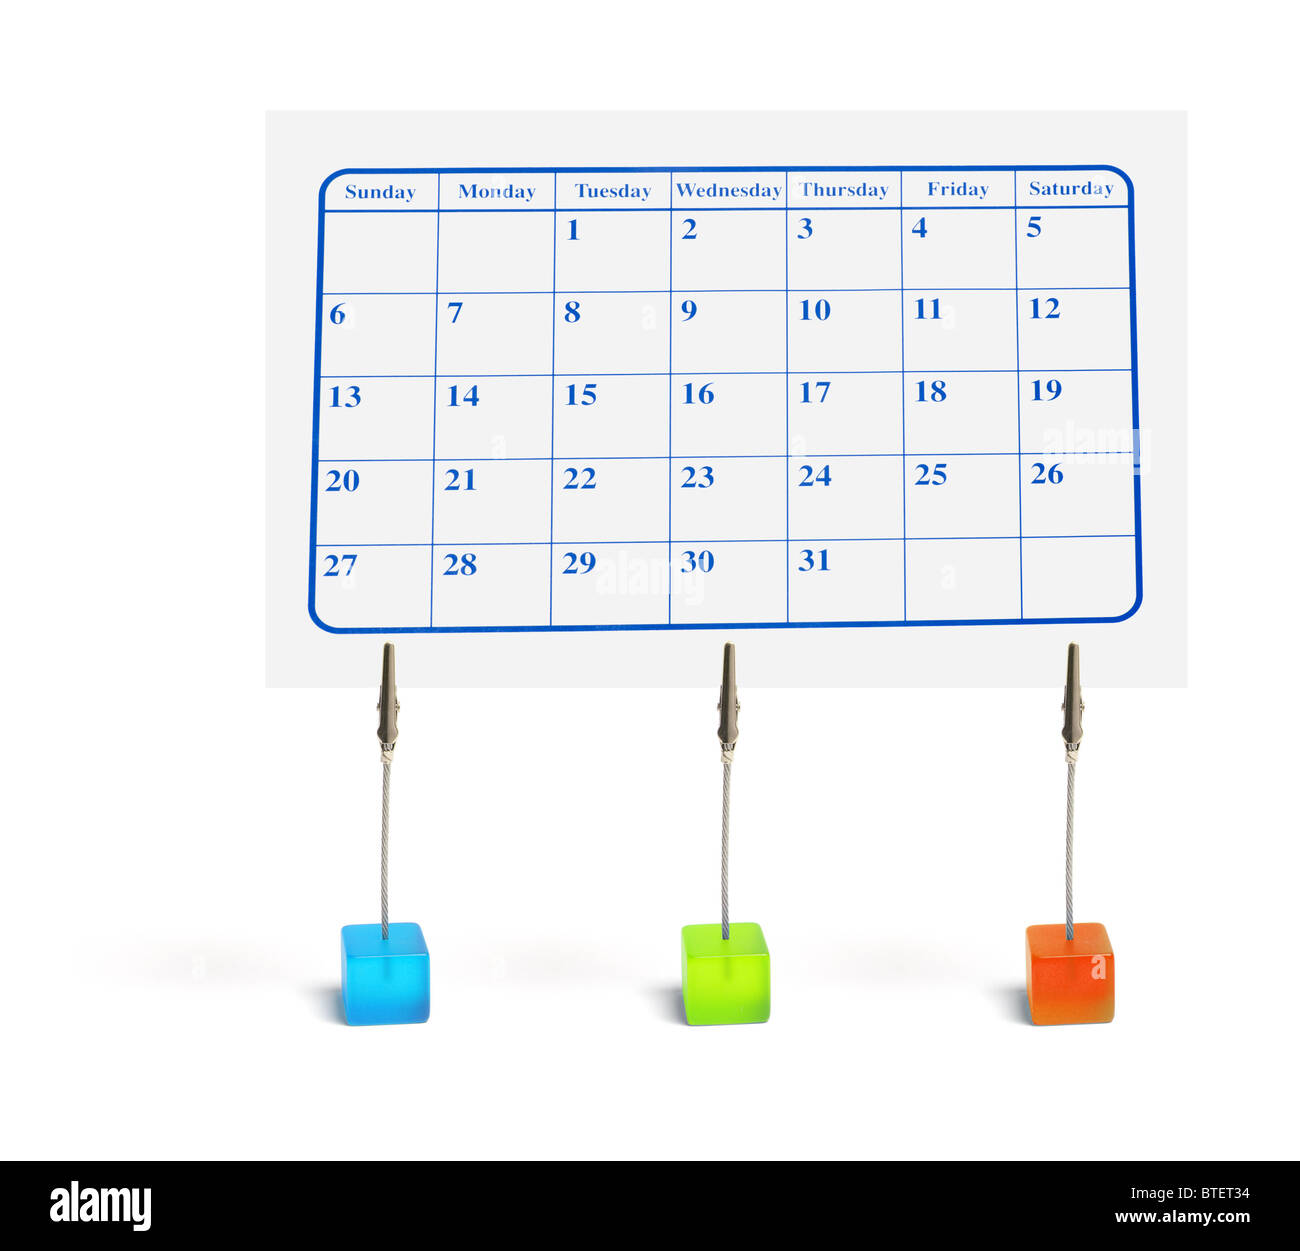 Calendar with Memo Clip Holders - Stock Image